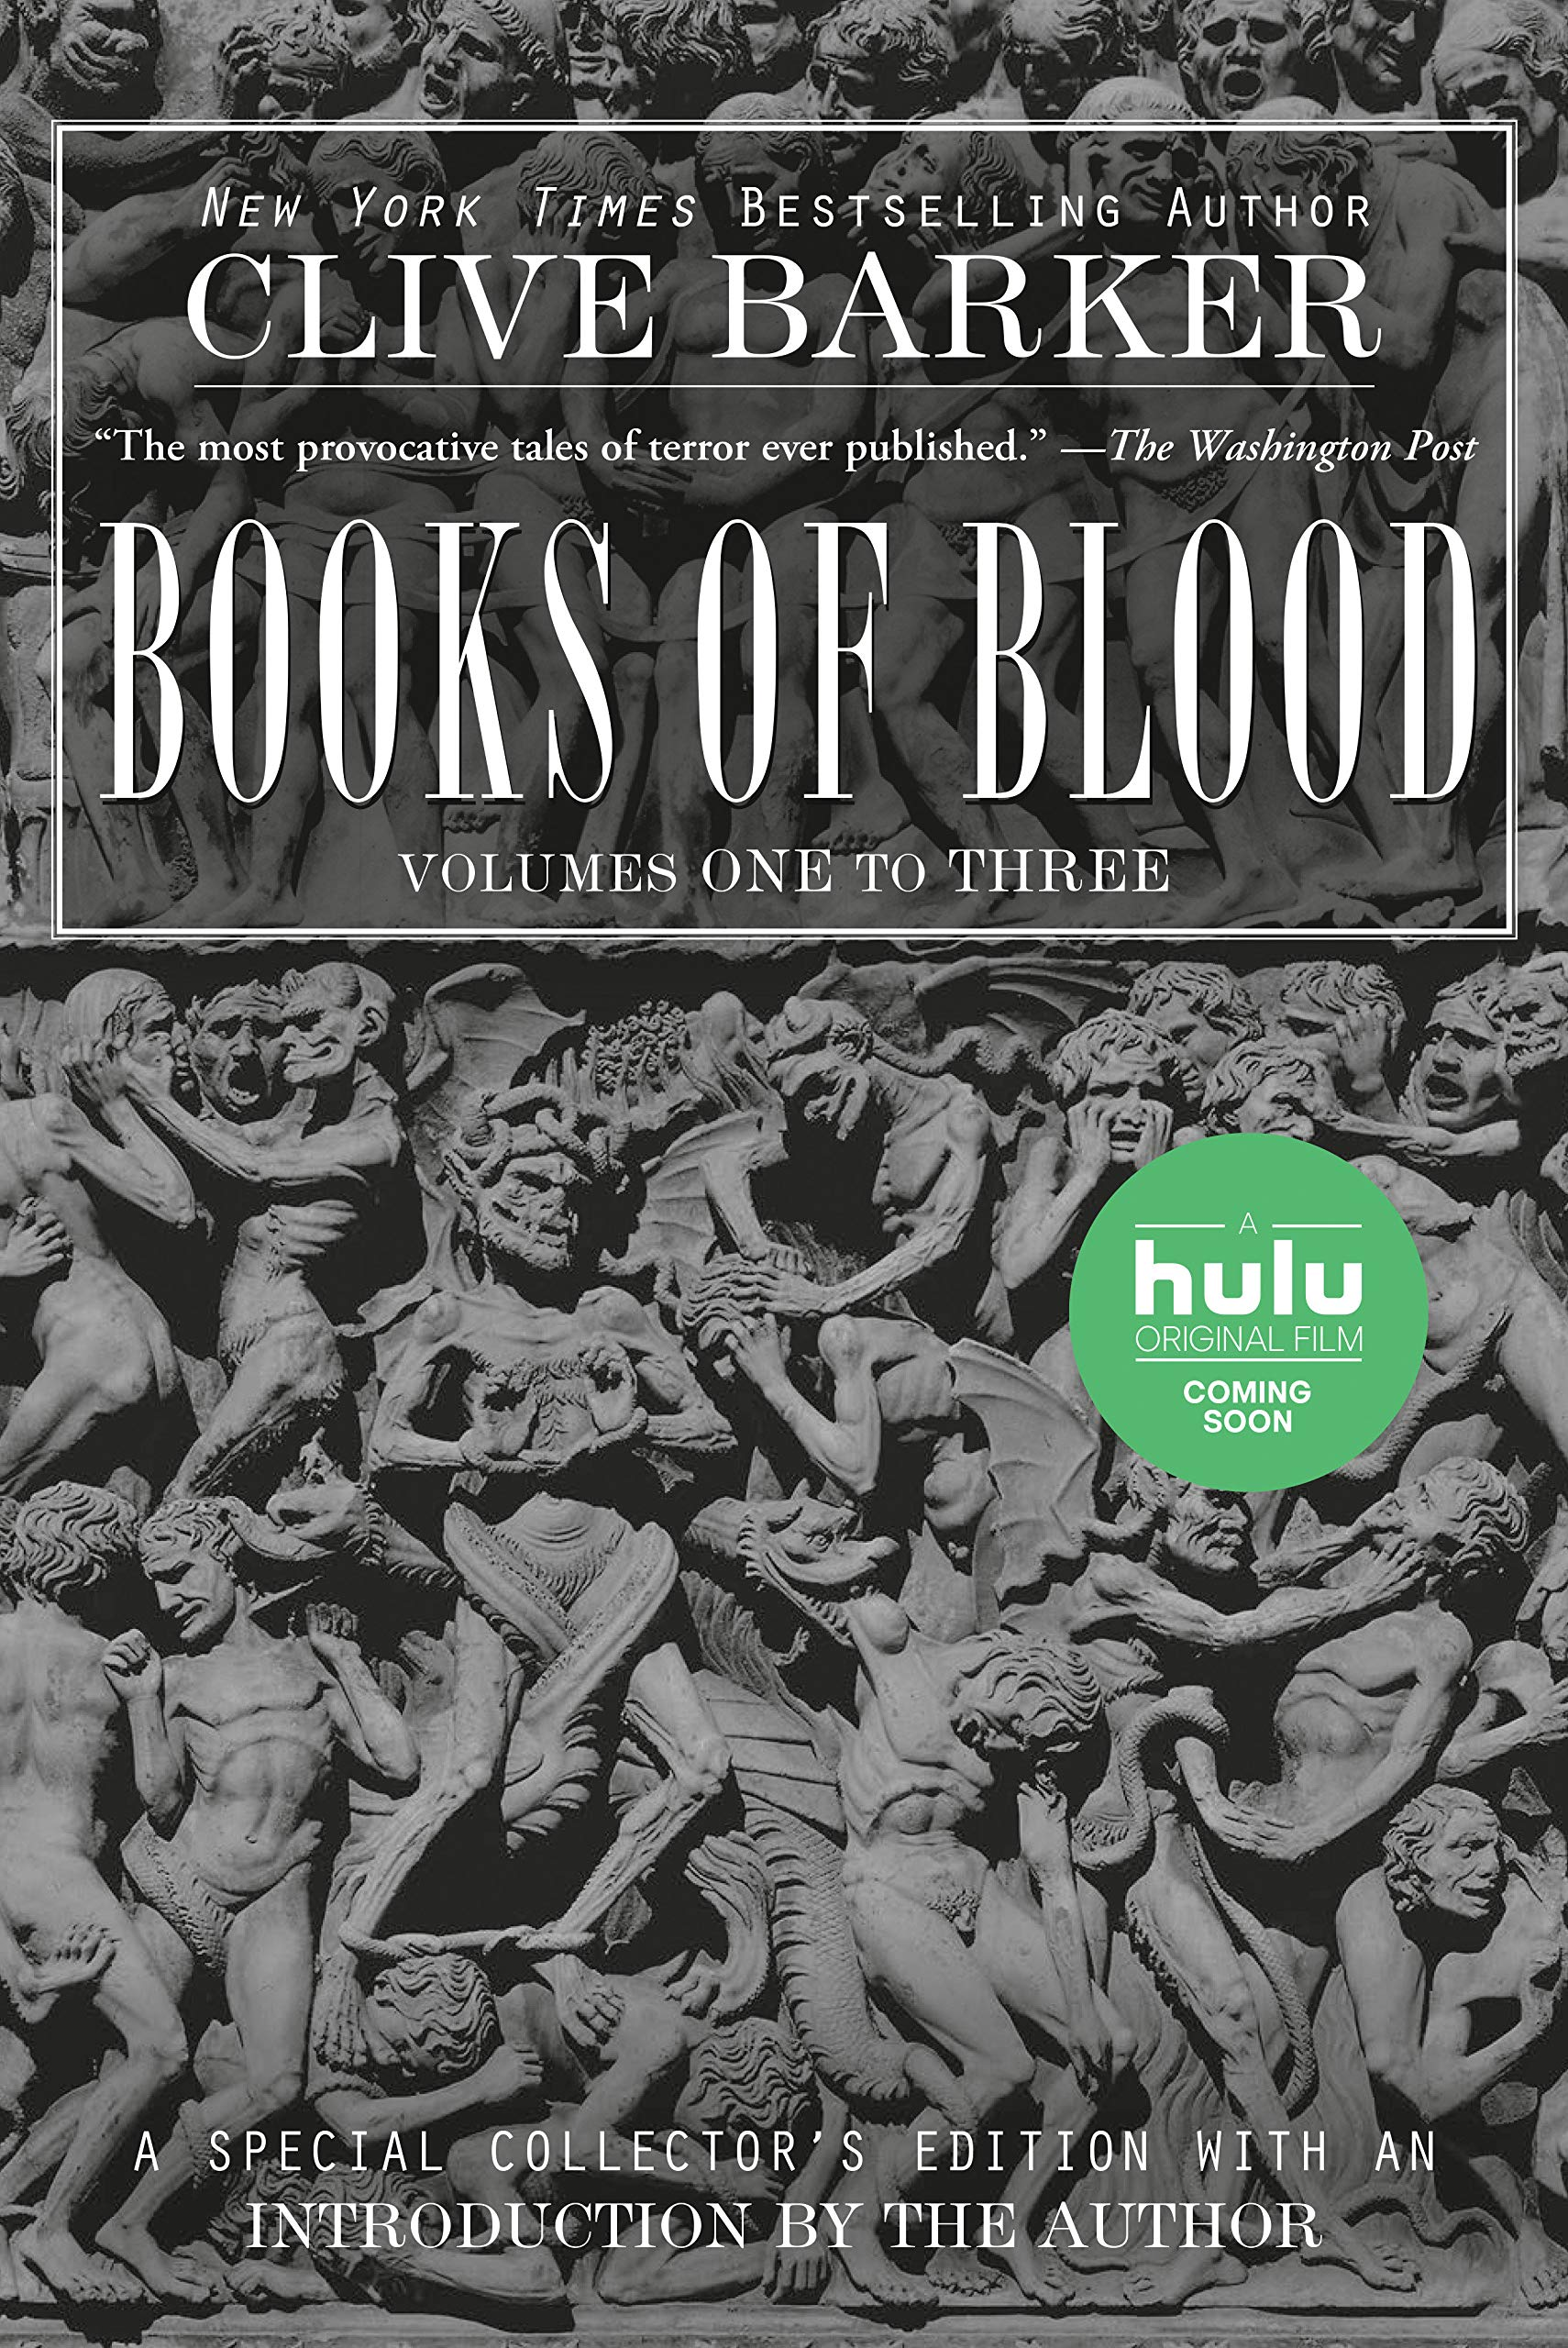 Books of Blood - Cover